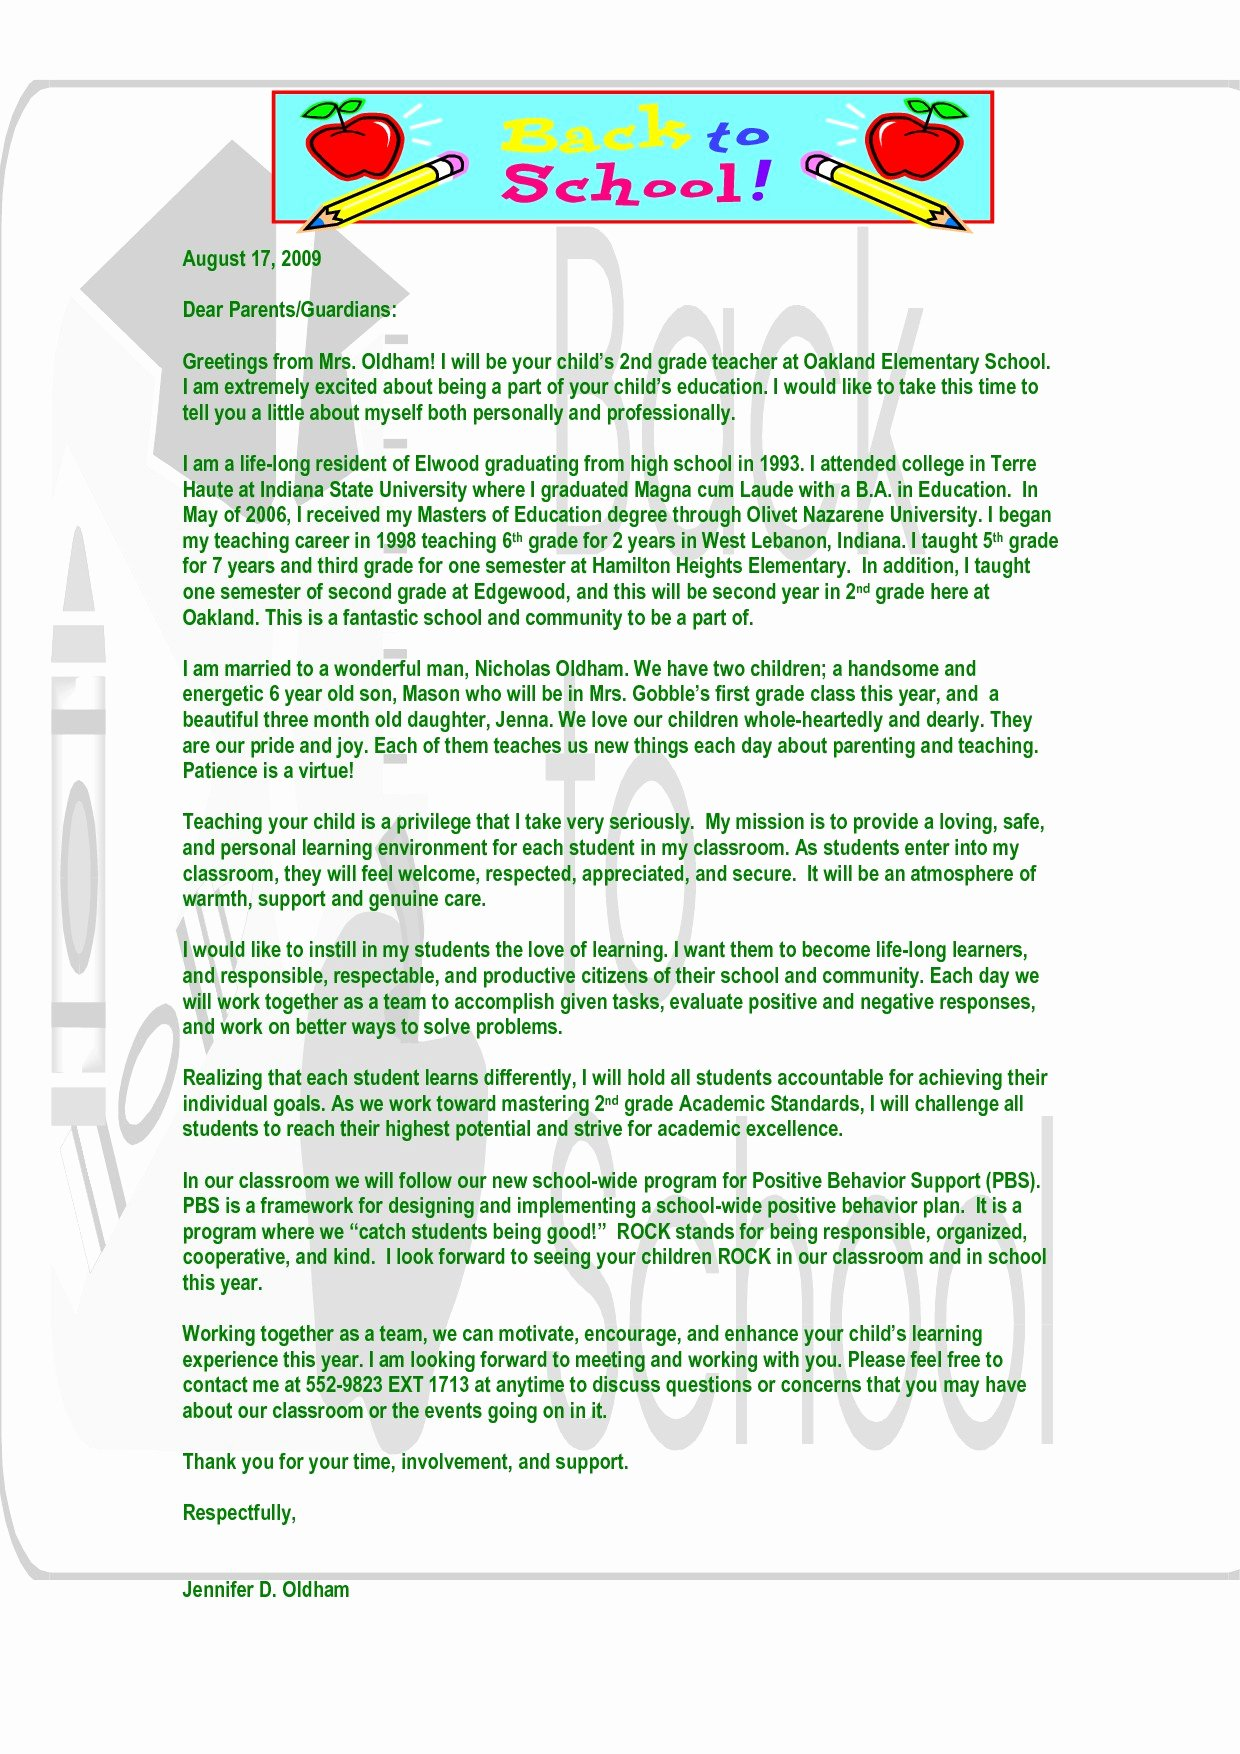 Teacher Welcome Letter Template Awesome Teacher Wel E Letter to Parents Template Samples